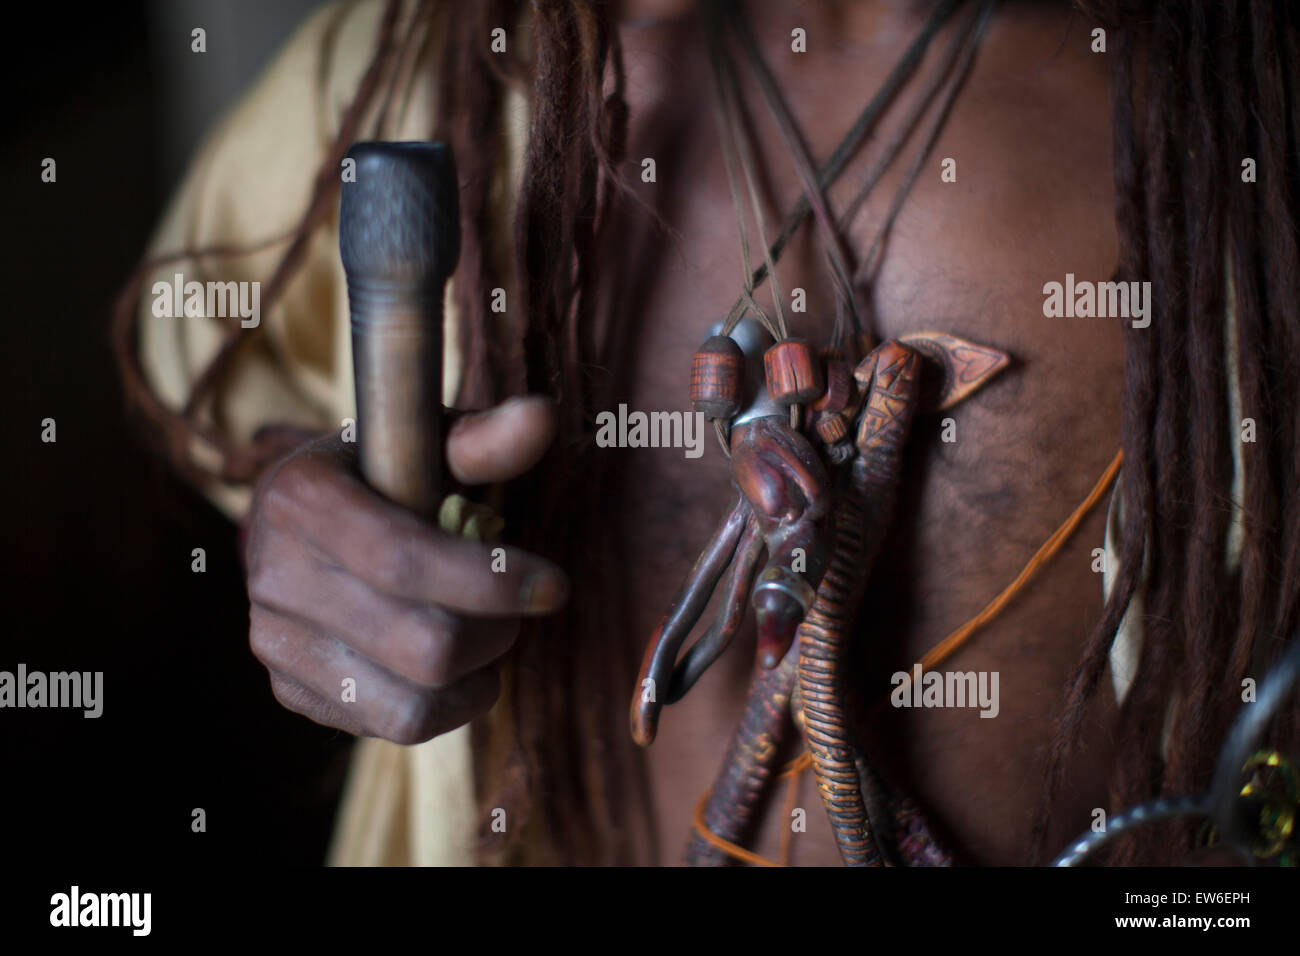 The ornamentation and pipe of a Hindu Sadhu is held in Kathmandu's Pashupatinath Temple in Nepal. - Stock Image